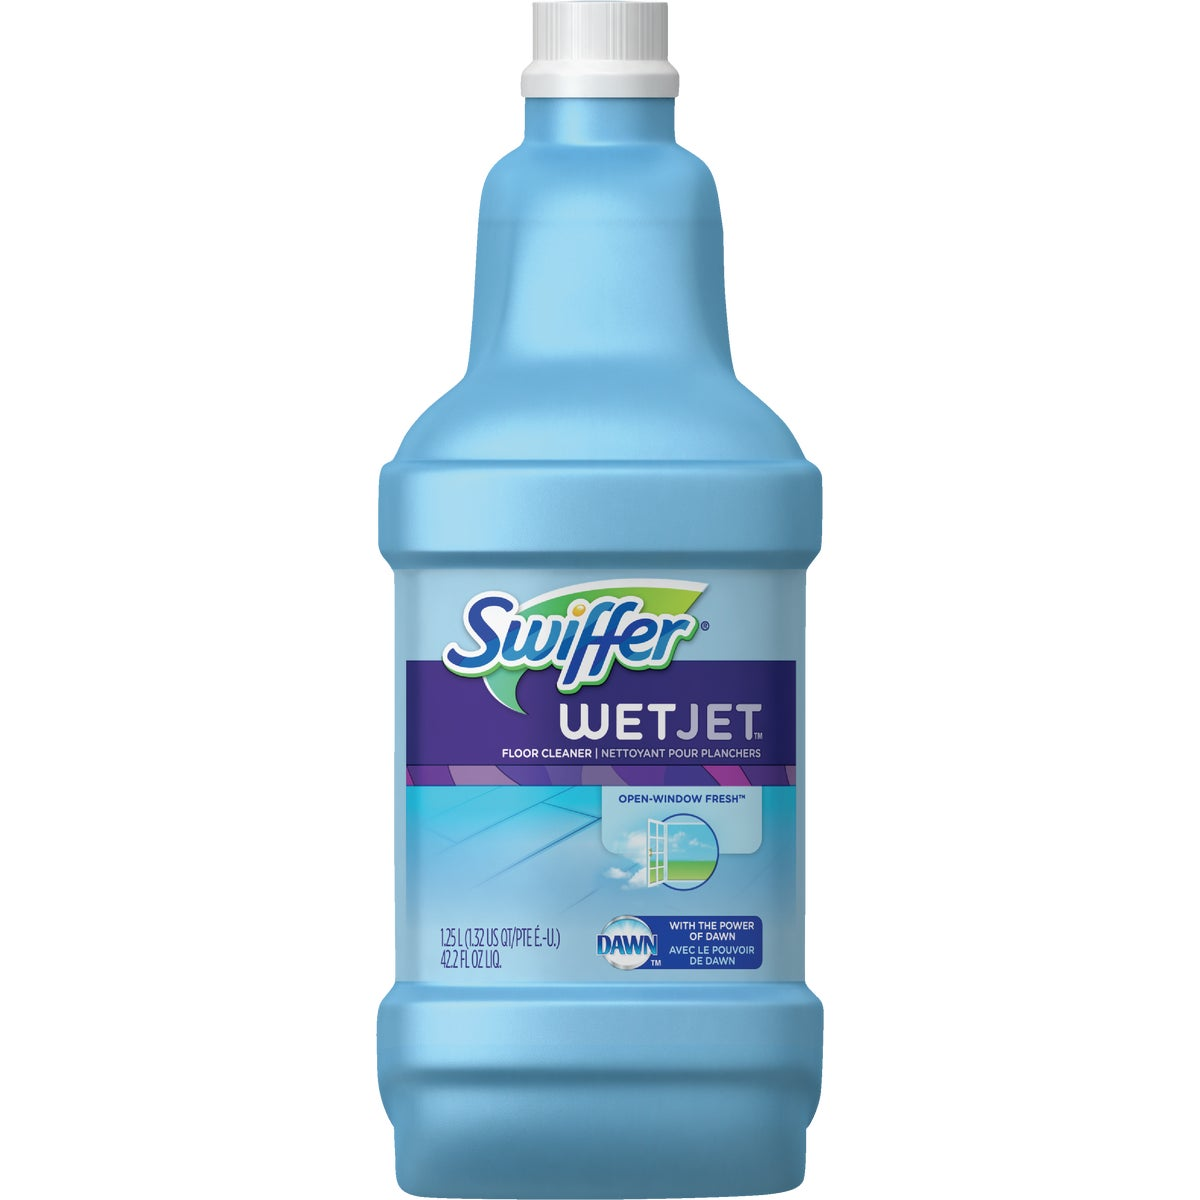 MLTI-PURP WETJET CLEANER - 23679 by Procter & Gamble